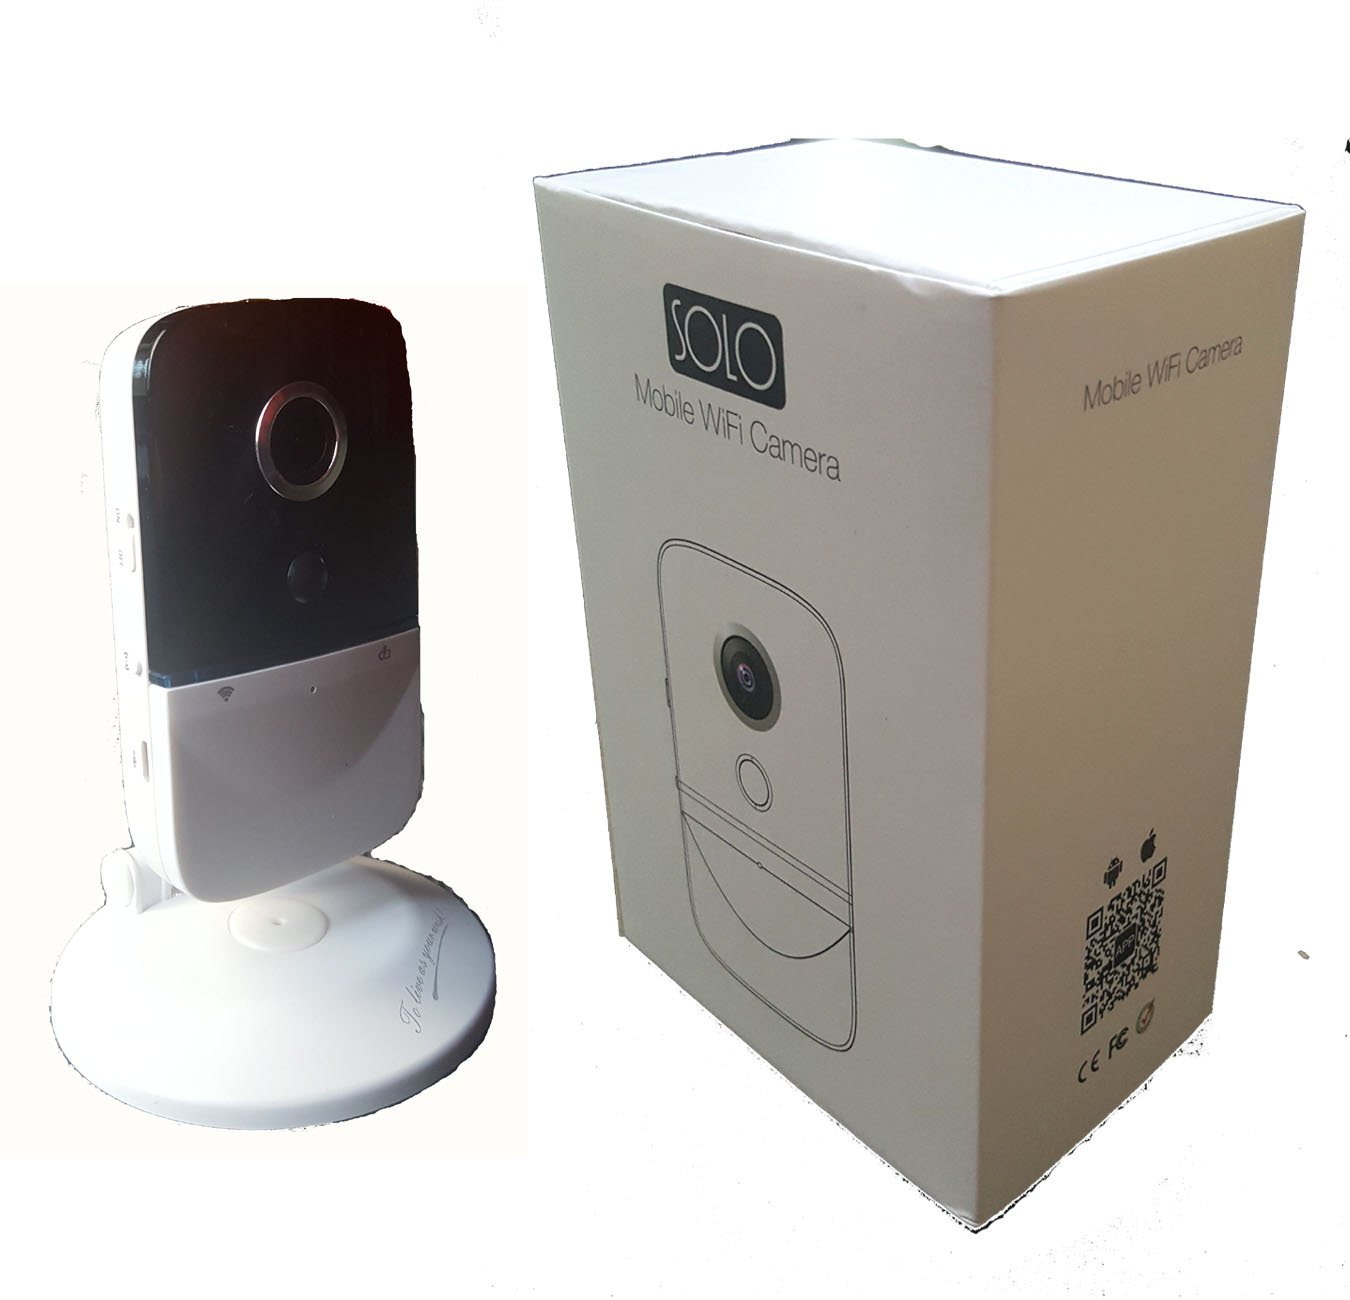 Solotech C330 Wi-Fi Cube Camera, Battery Operated, 720P